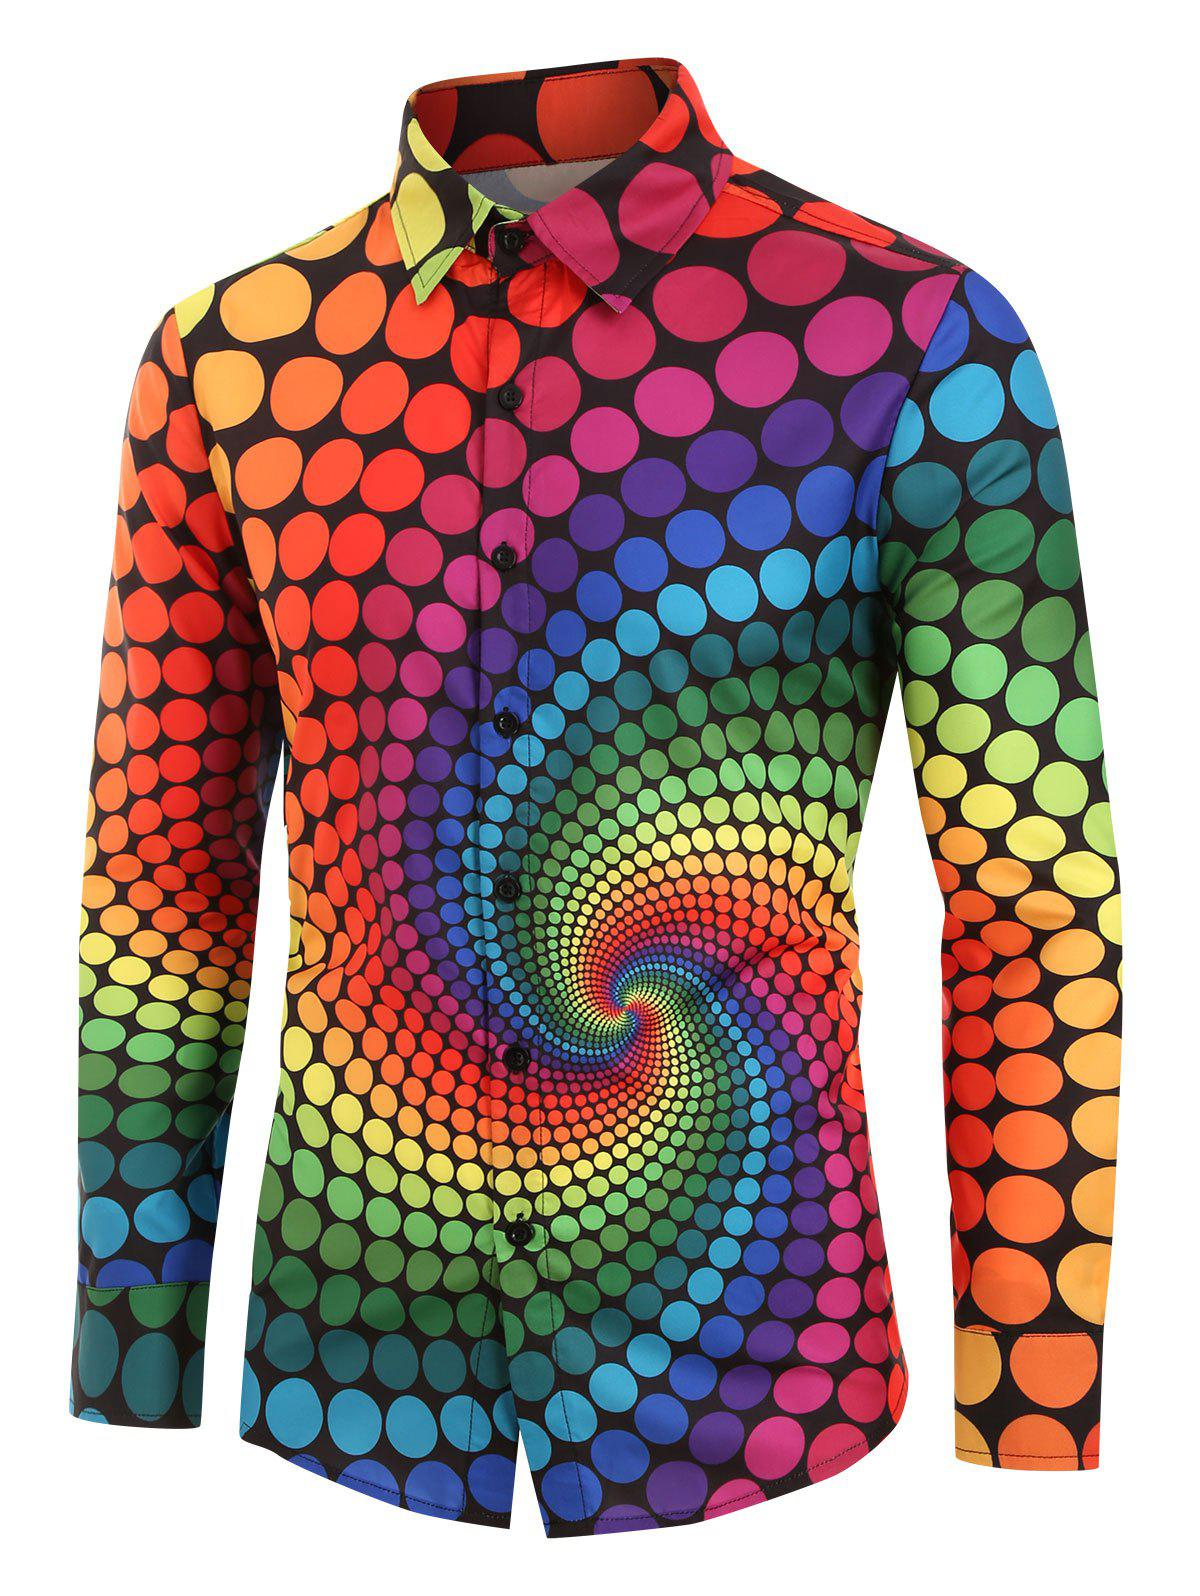 Plus Size Colorful Polka Dot Swirl Print Long Sleeve Shirt - multicolor 3XL